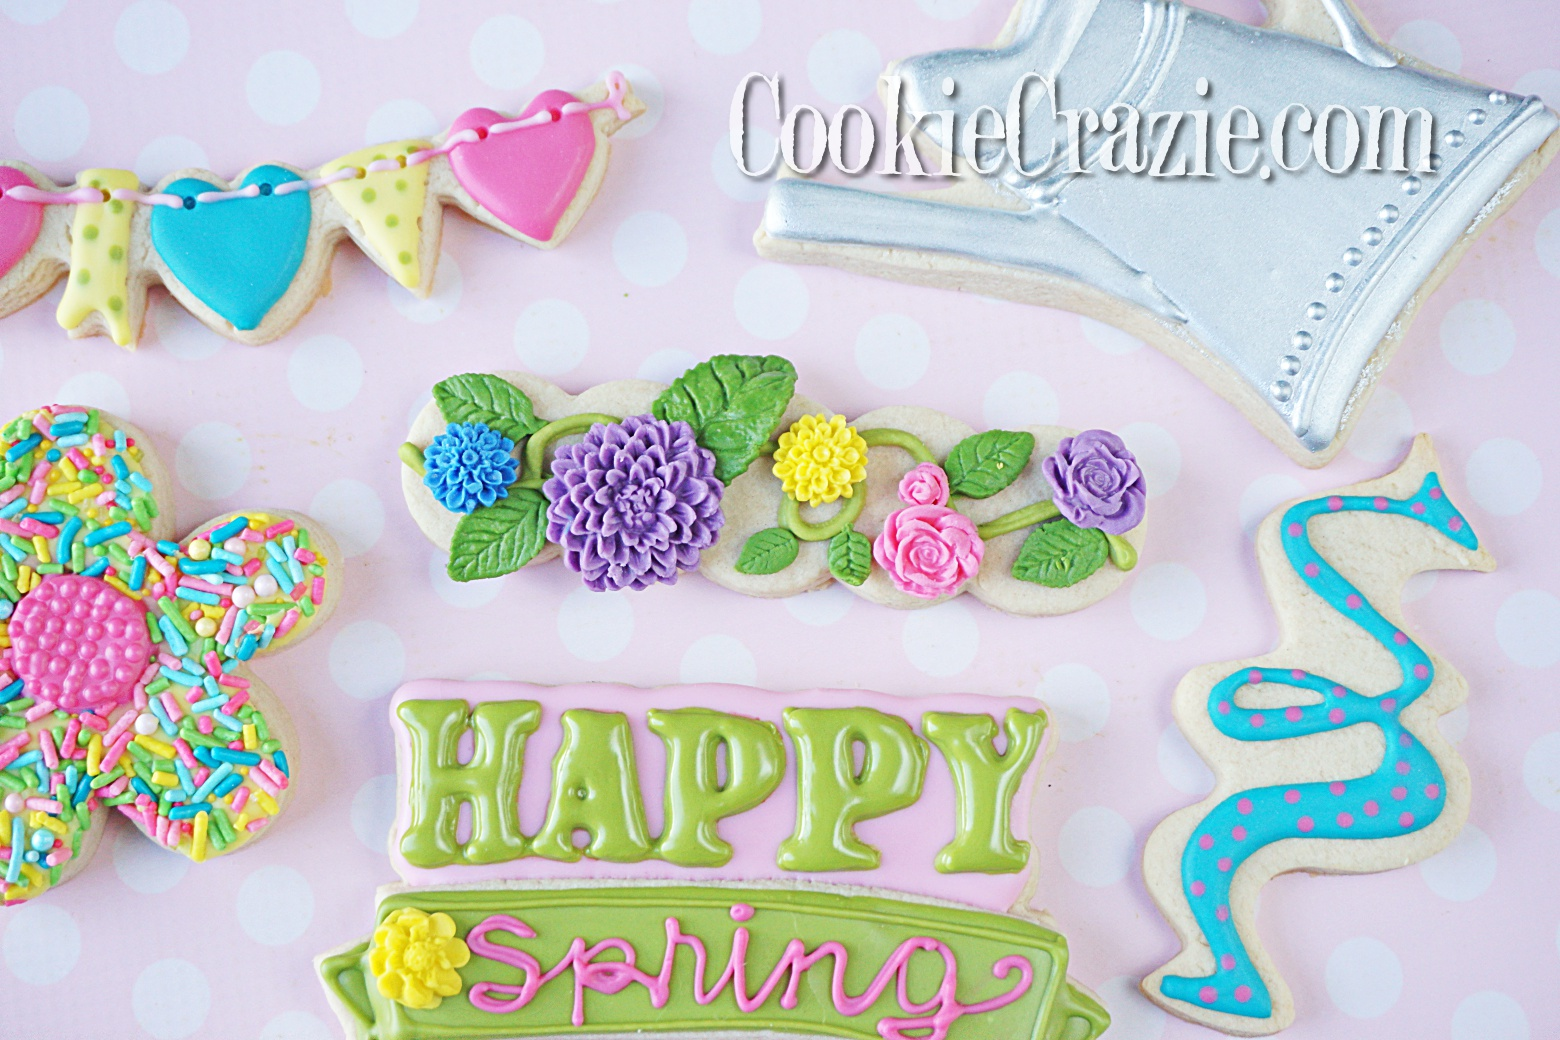 Floral Vine Decorated Sugar Cookie YouTube video  HERE